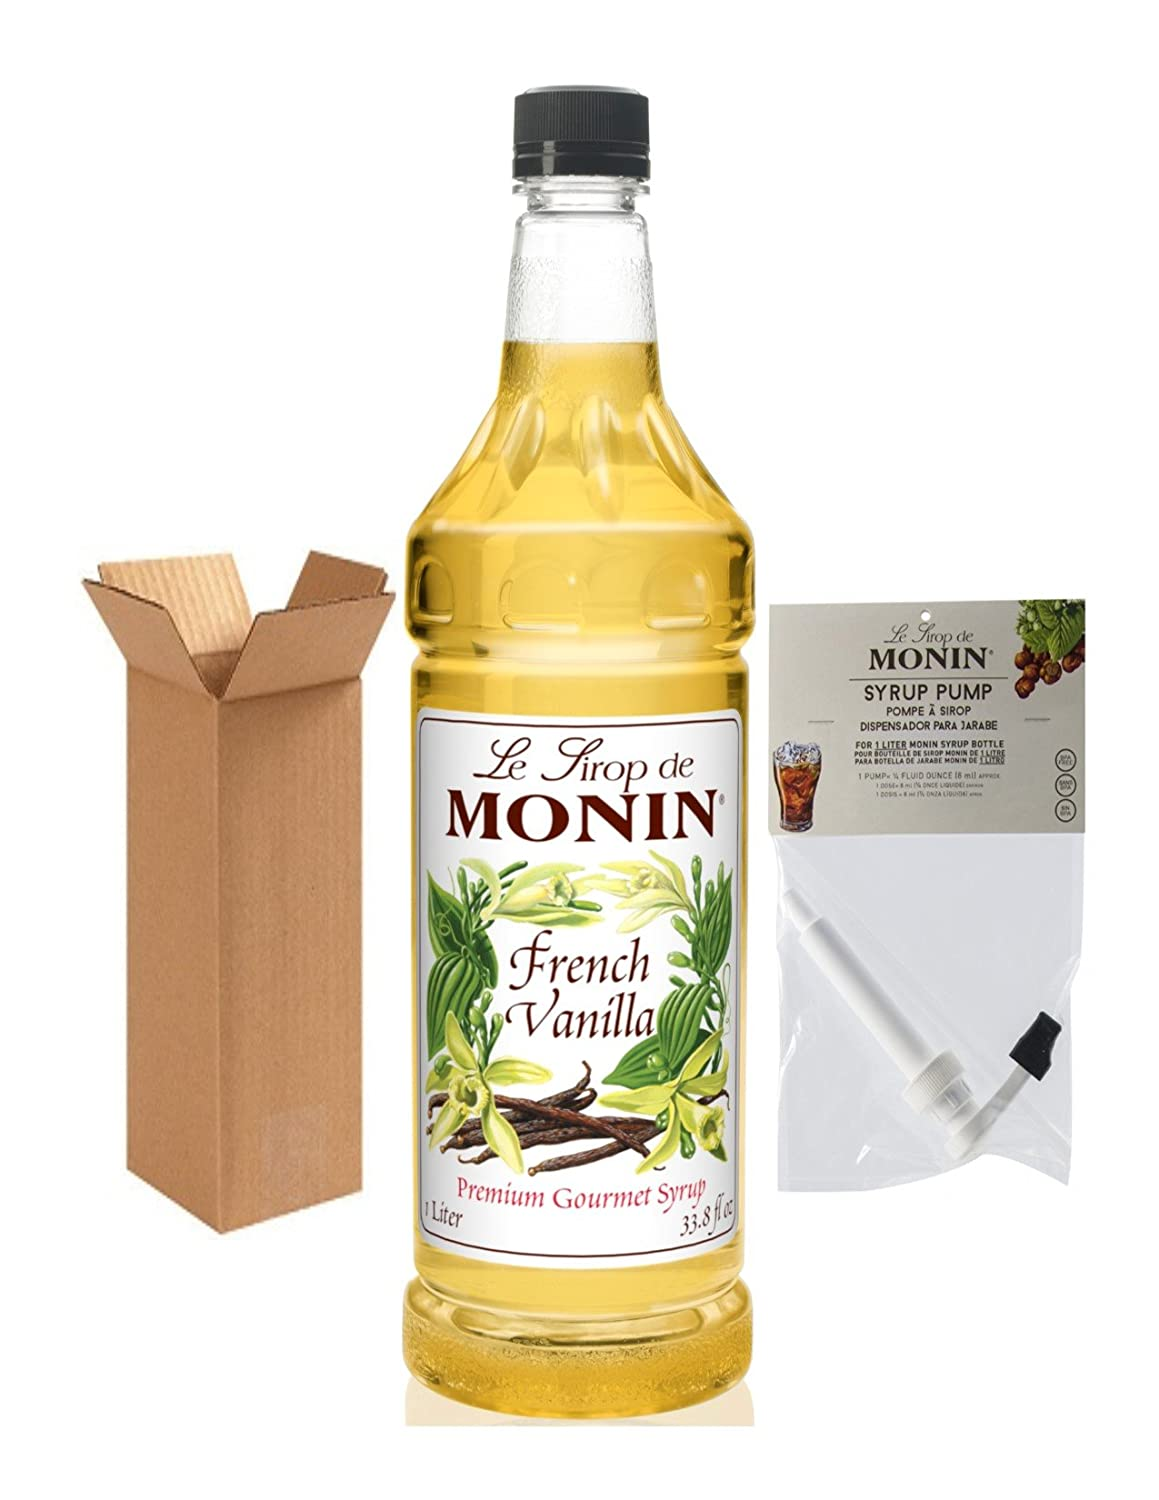 Amazon.com : Monin French Vanilla Syrup, 33.8-Ounce Plastic Bottle (1 Liter) with Monin BPA Free Pump, Boxed. : Grocery & Gourmet Food